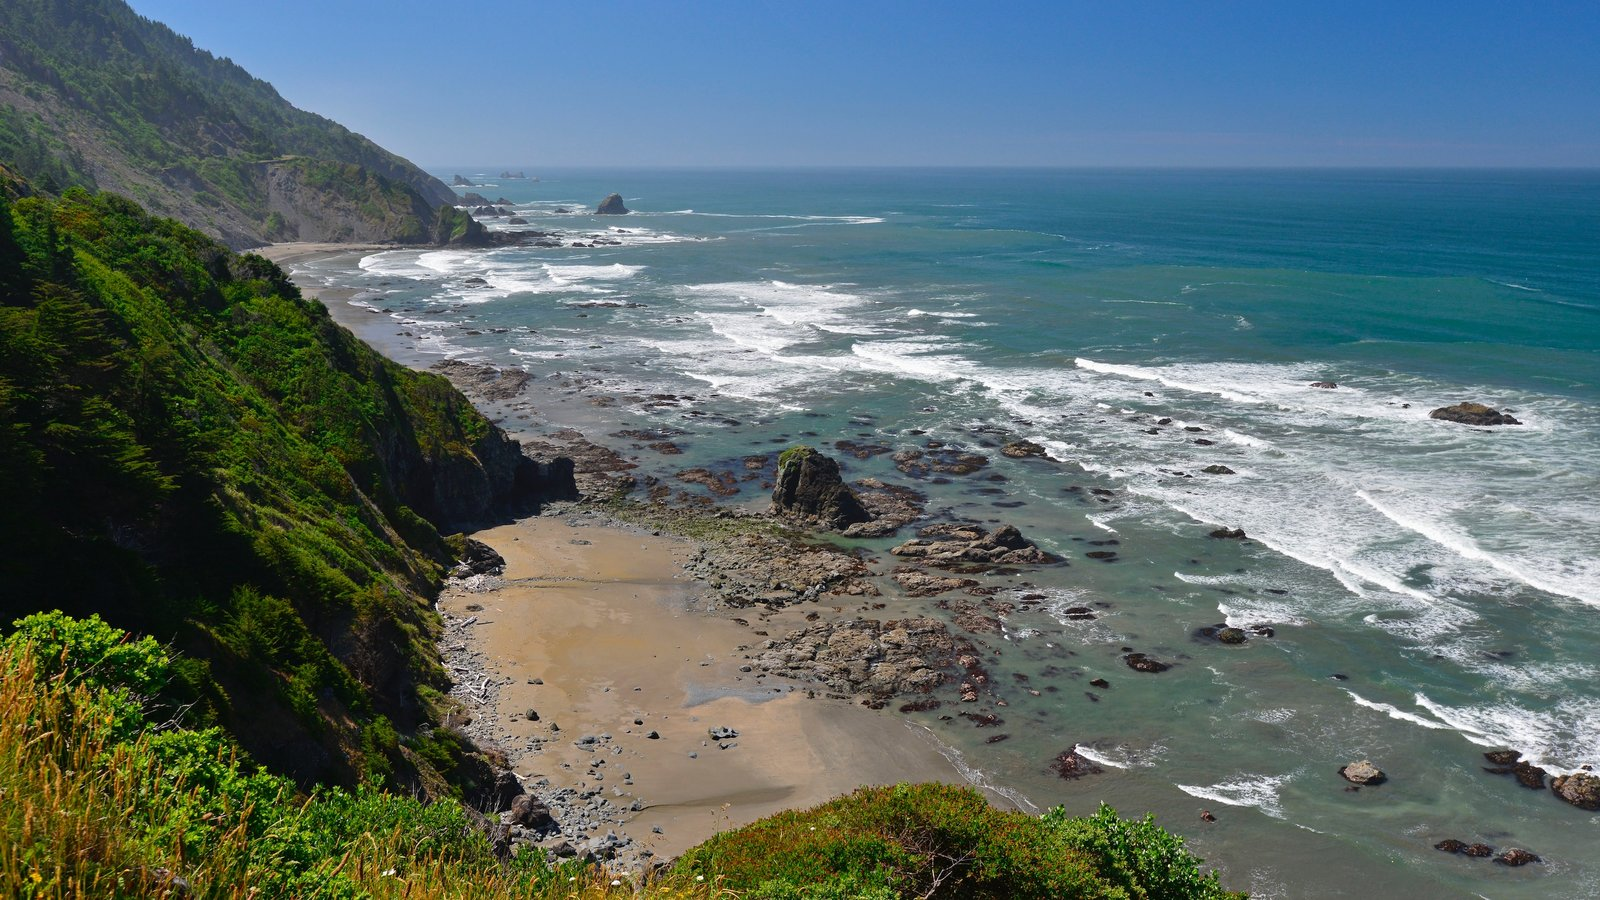 Redwood National and State Parks featuring rocky coastline, general coastal views and a beach